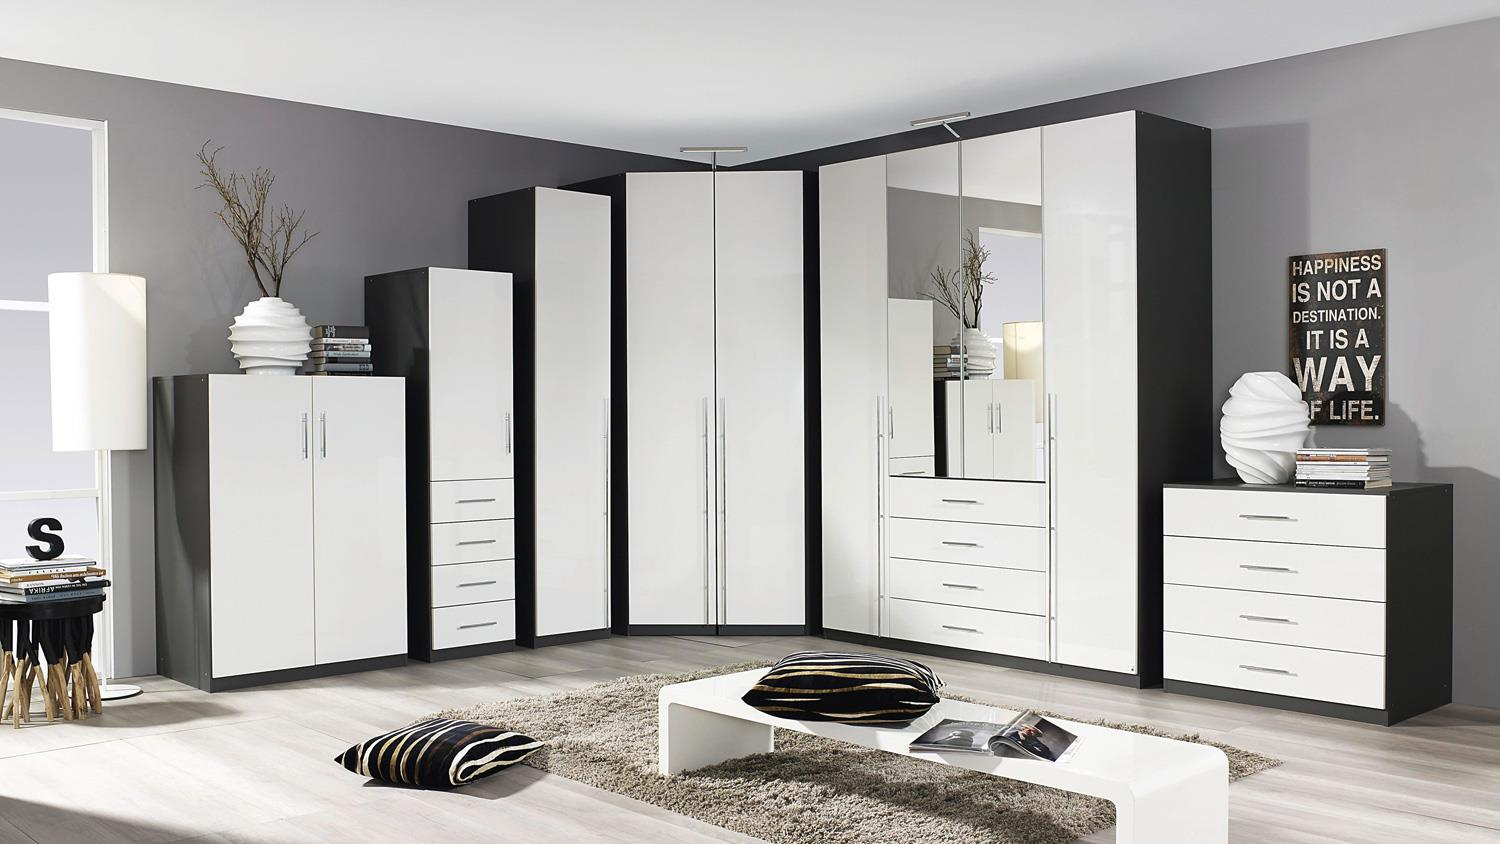 kleiderschrank elan schrank in wei hochglanz und graphit. Black Bedroom Furniture Sets. Home Design Ideas